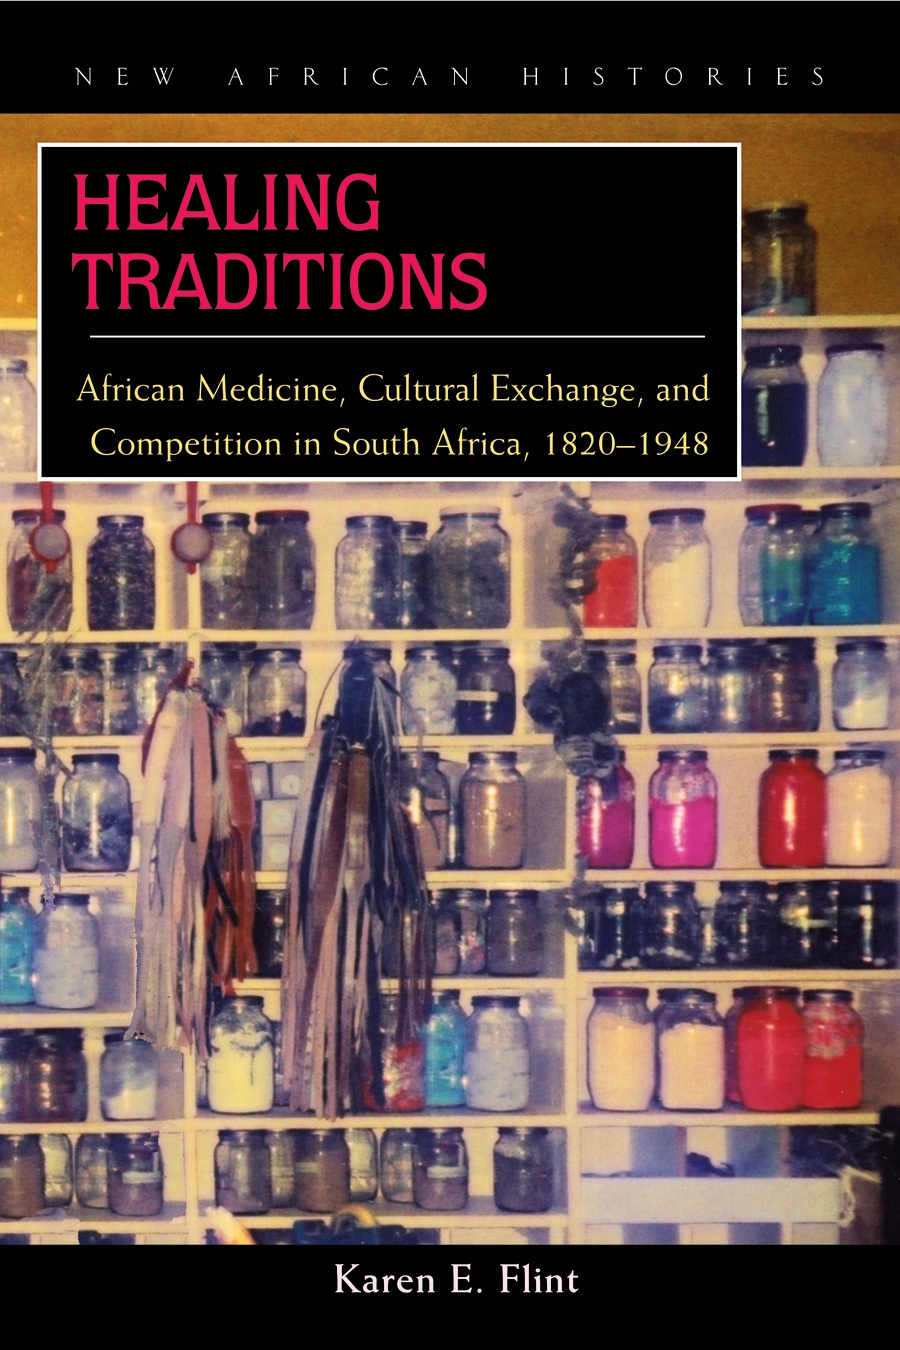 Healing Traditions: African Medicine, Cultural Exchange, and